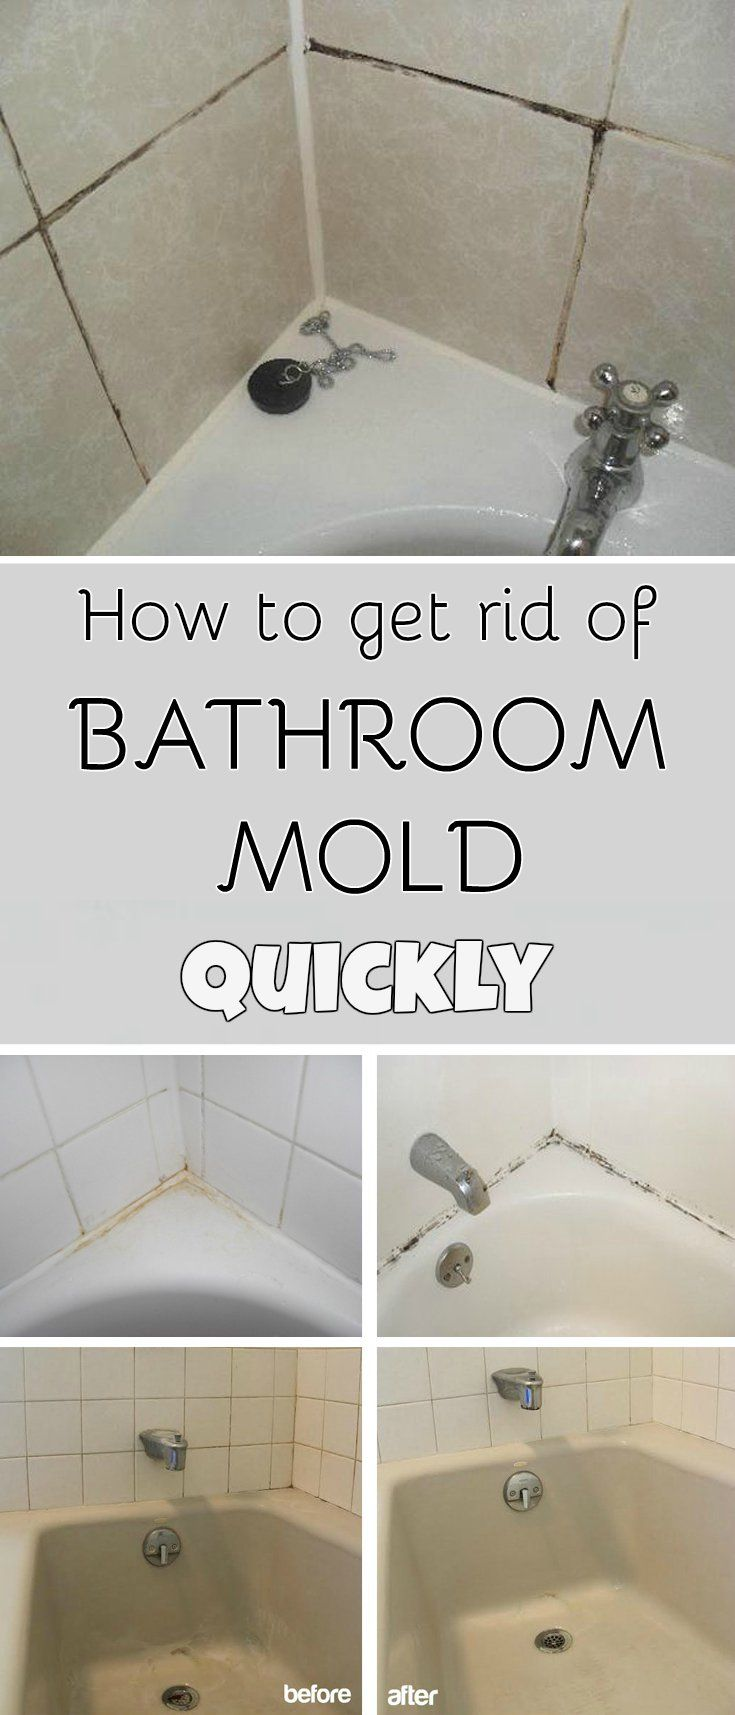 how to get rid of bathroom mold quickly mycleaningsolutionscom - Mold Bathroom Ceiling